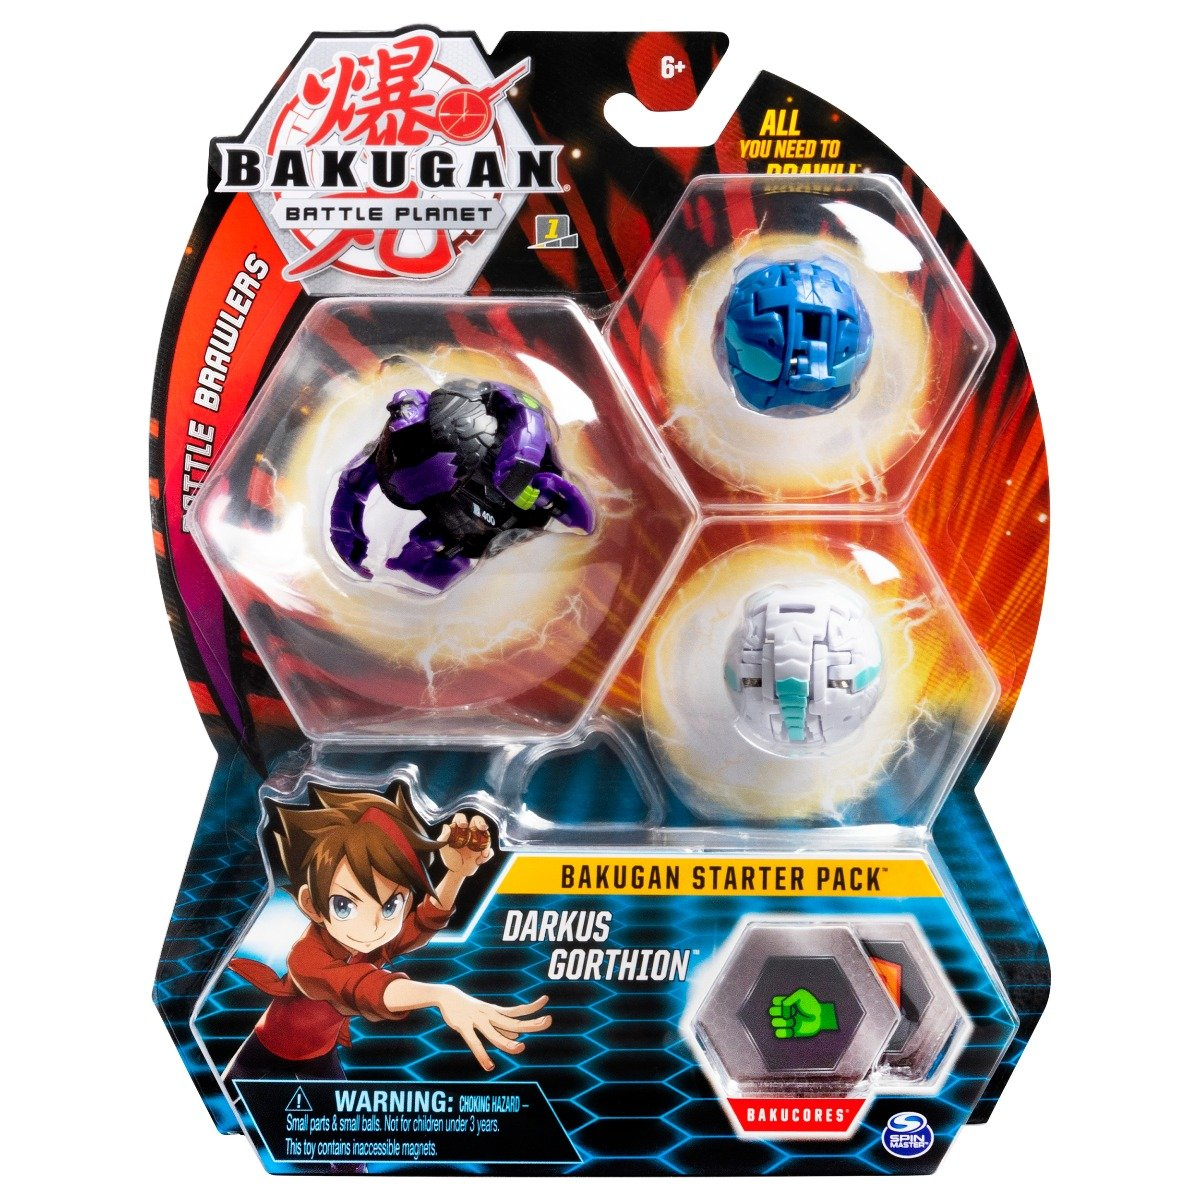 Set Bakugan Battle Planet Starter Darkus Gorthion, 20109157